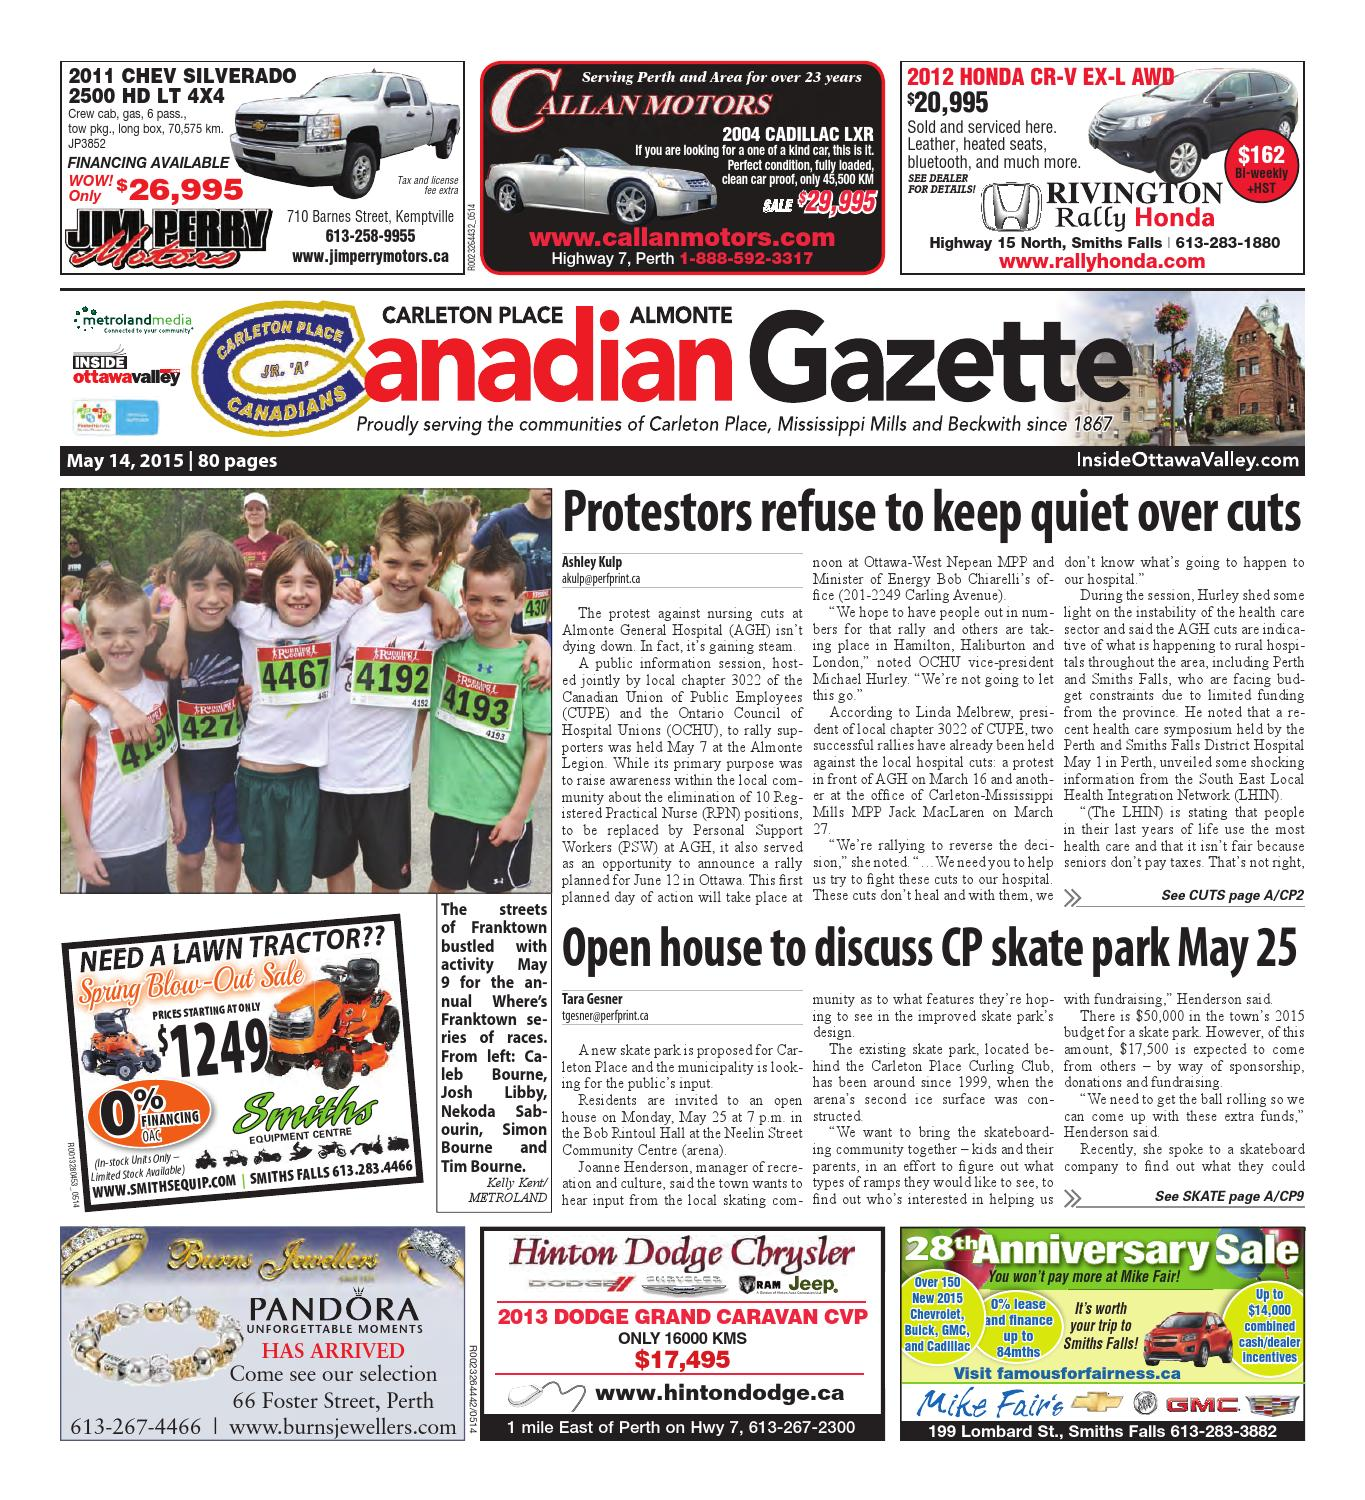 Almontecarletonplace051415 by metroland east almonte carleton almontecarletonplace051415 by metroland east almonte carleton place canadian gazette issuu fandeluxe Choice Image